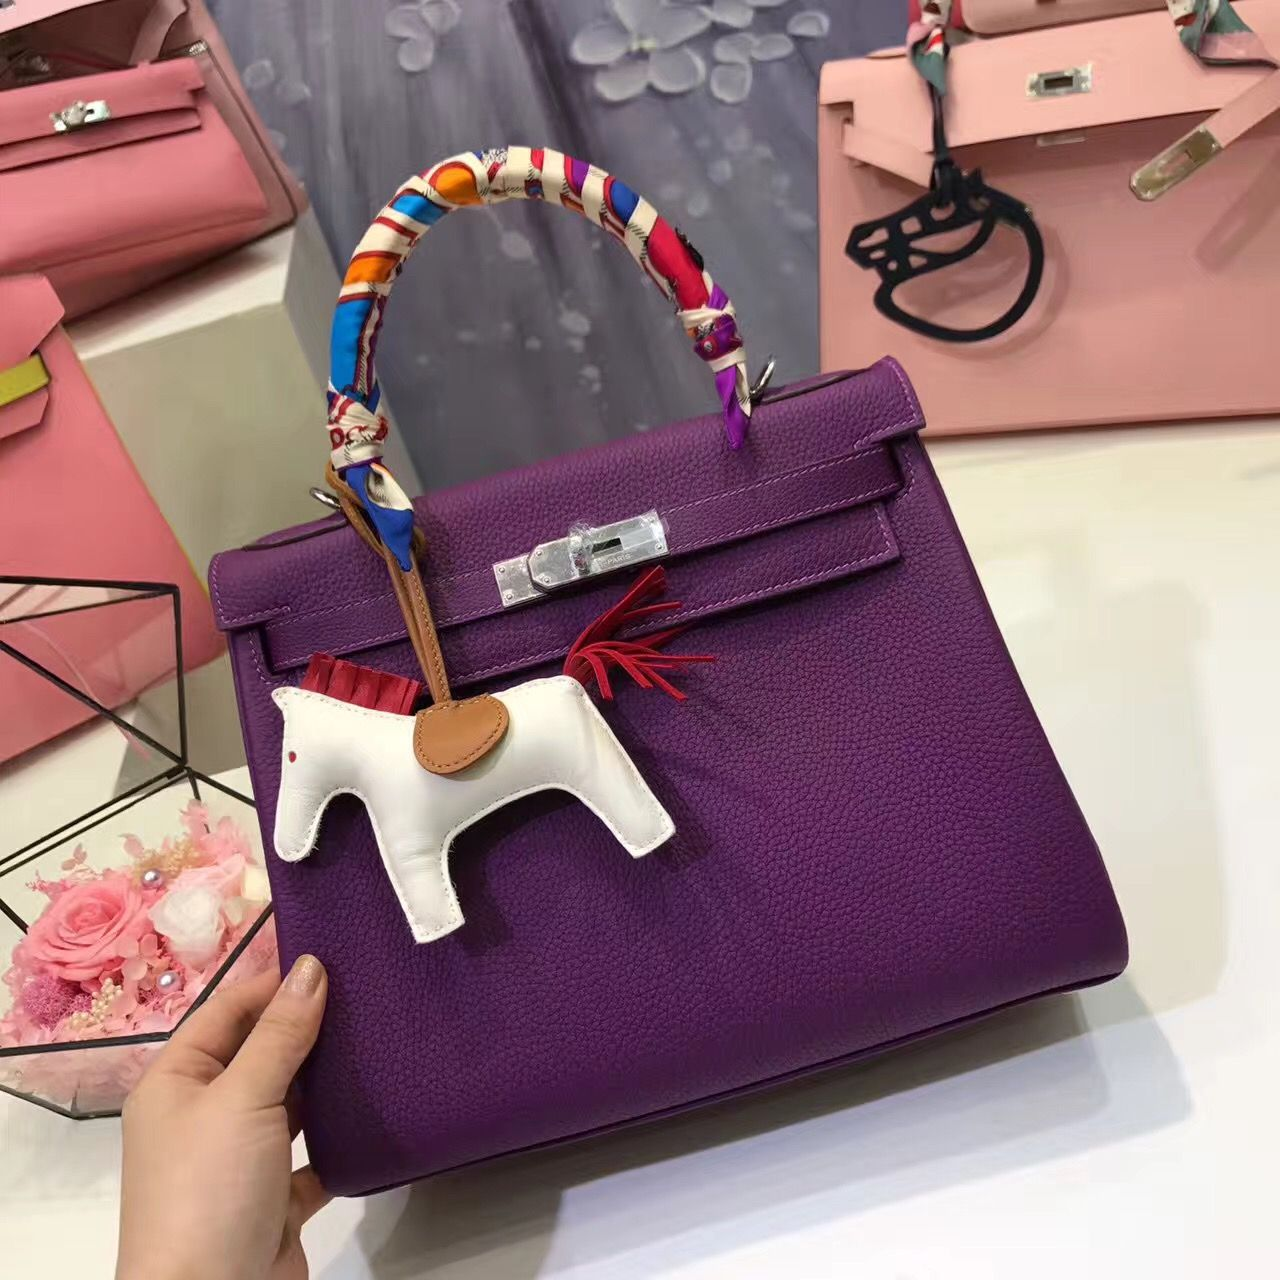 71b54d7efd1 Hermes Kelly bag in Anemone + Rodeo horse charm.